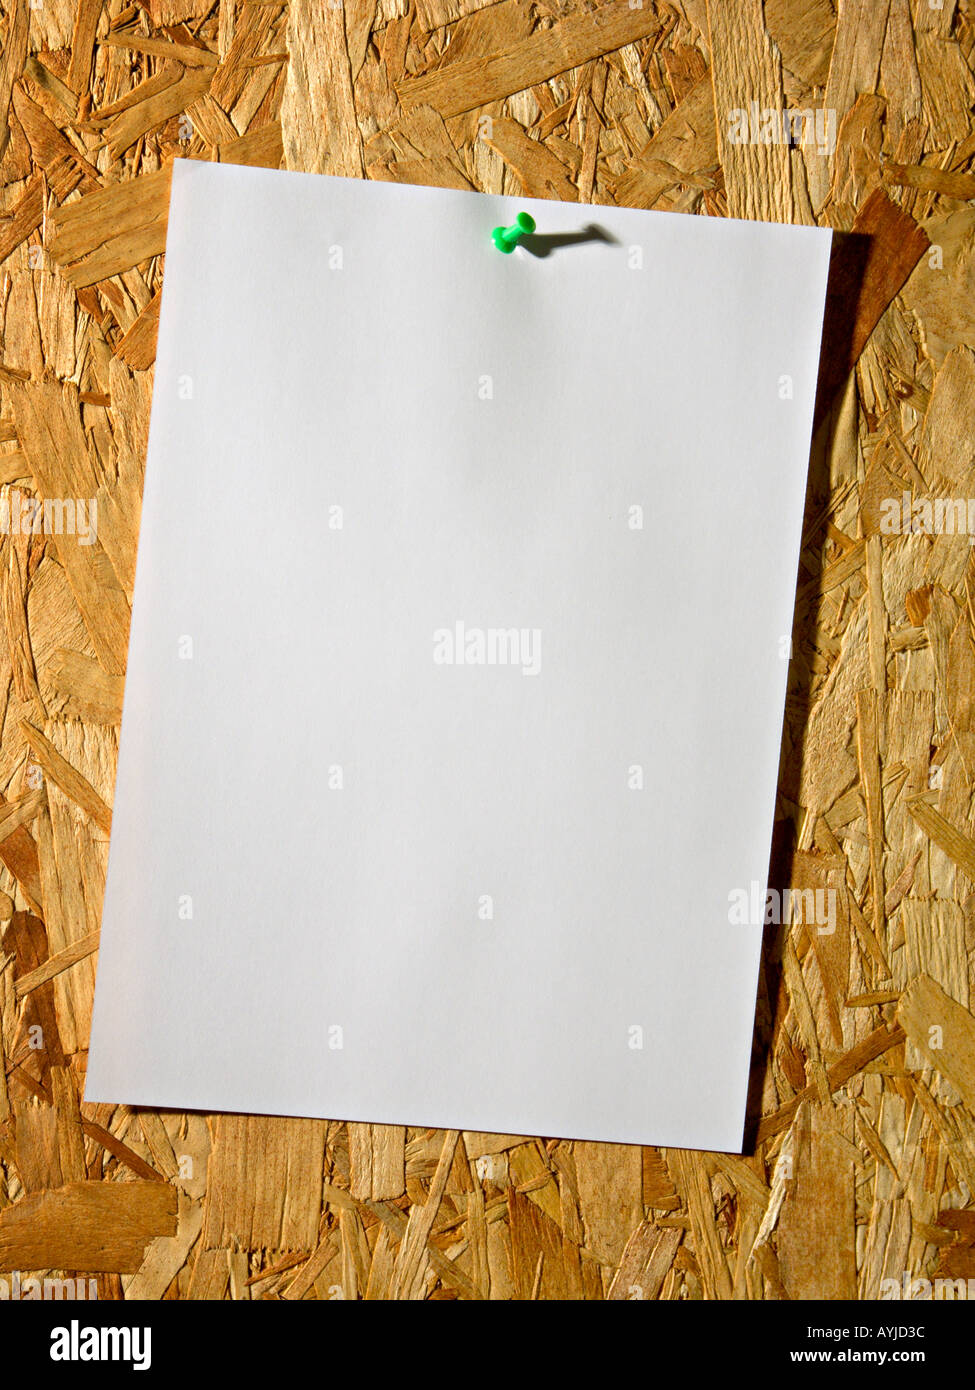 A blank notice pinned to a board - Stock Image